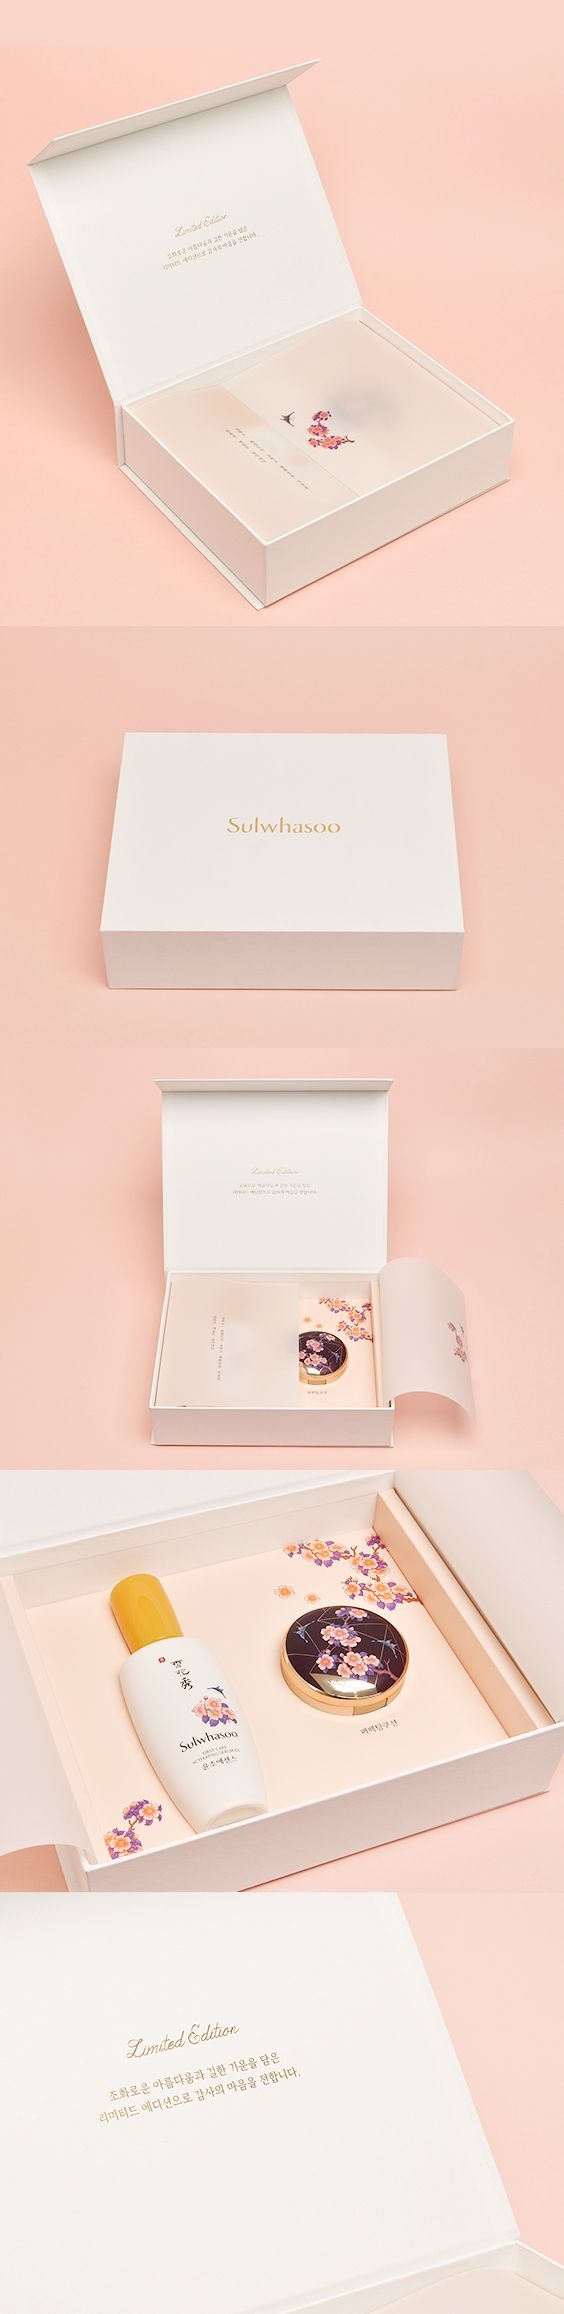 SULWHASOO-LIMITED EDITION PRESS KIT  cosmetics packaging design